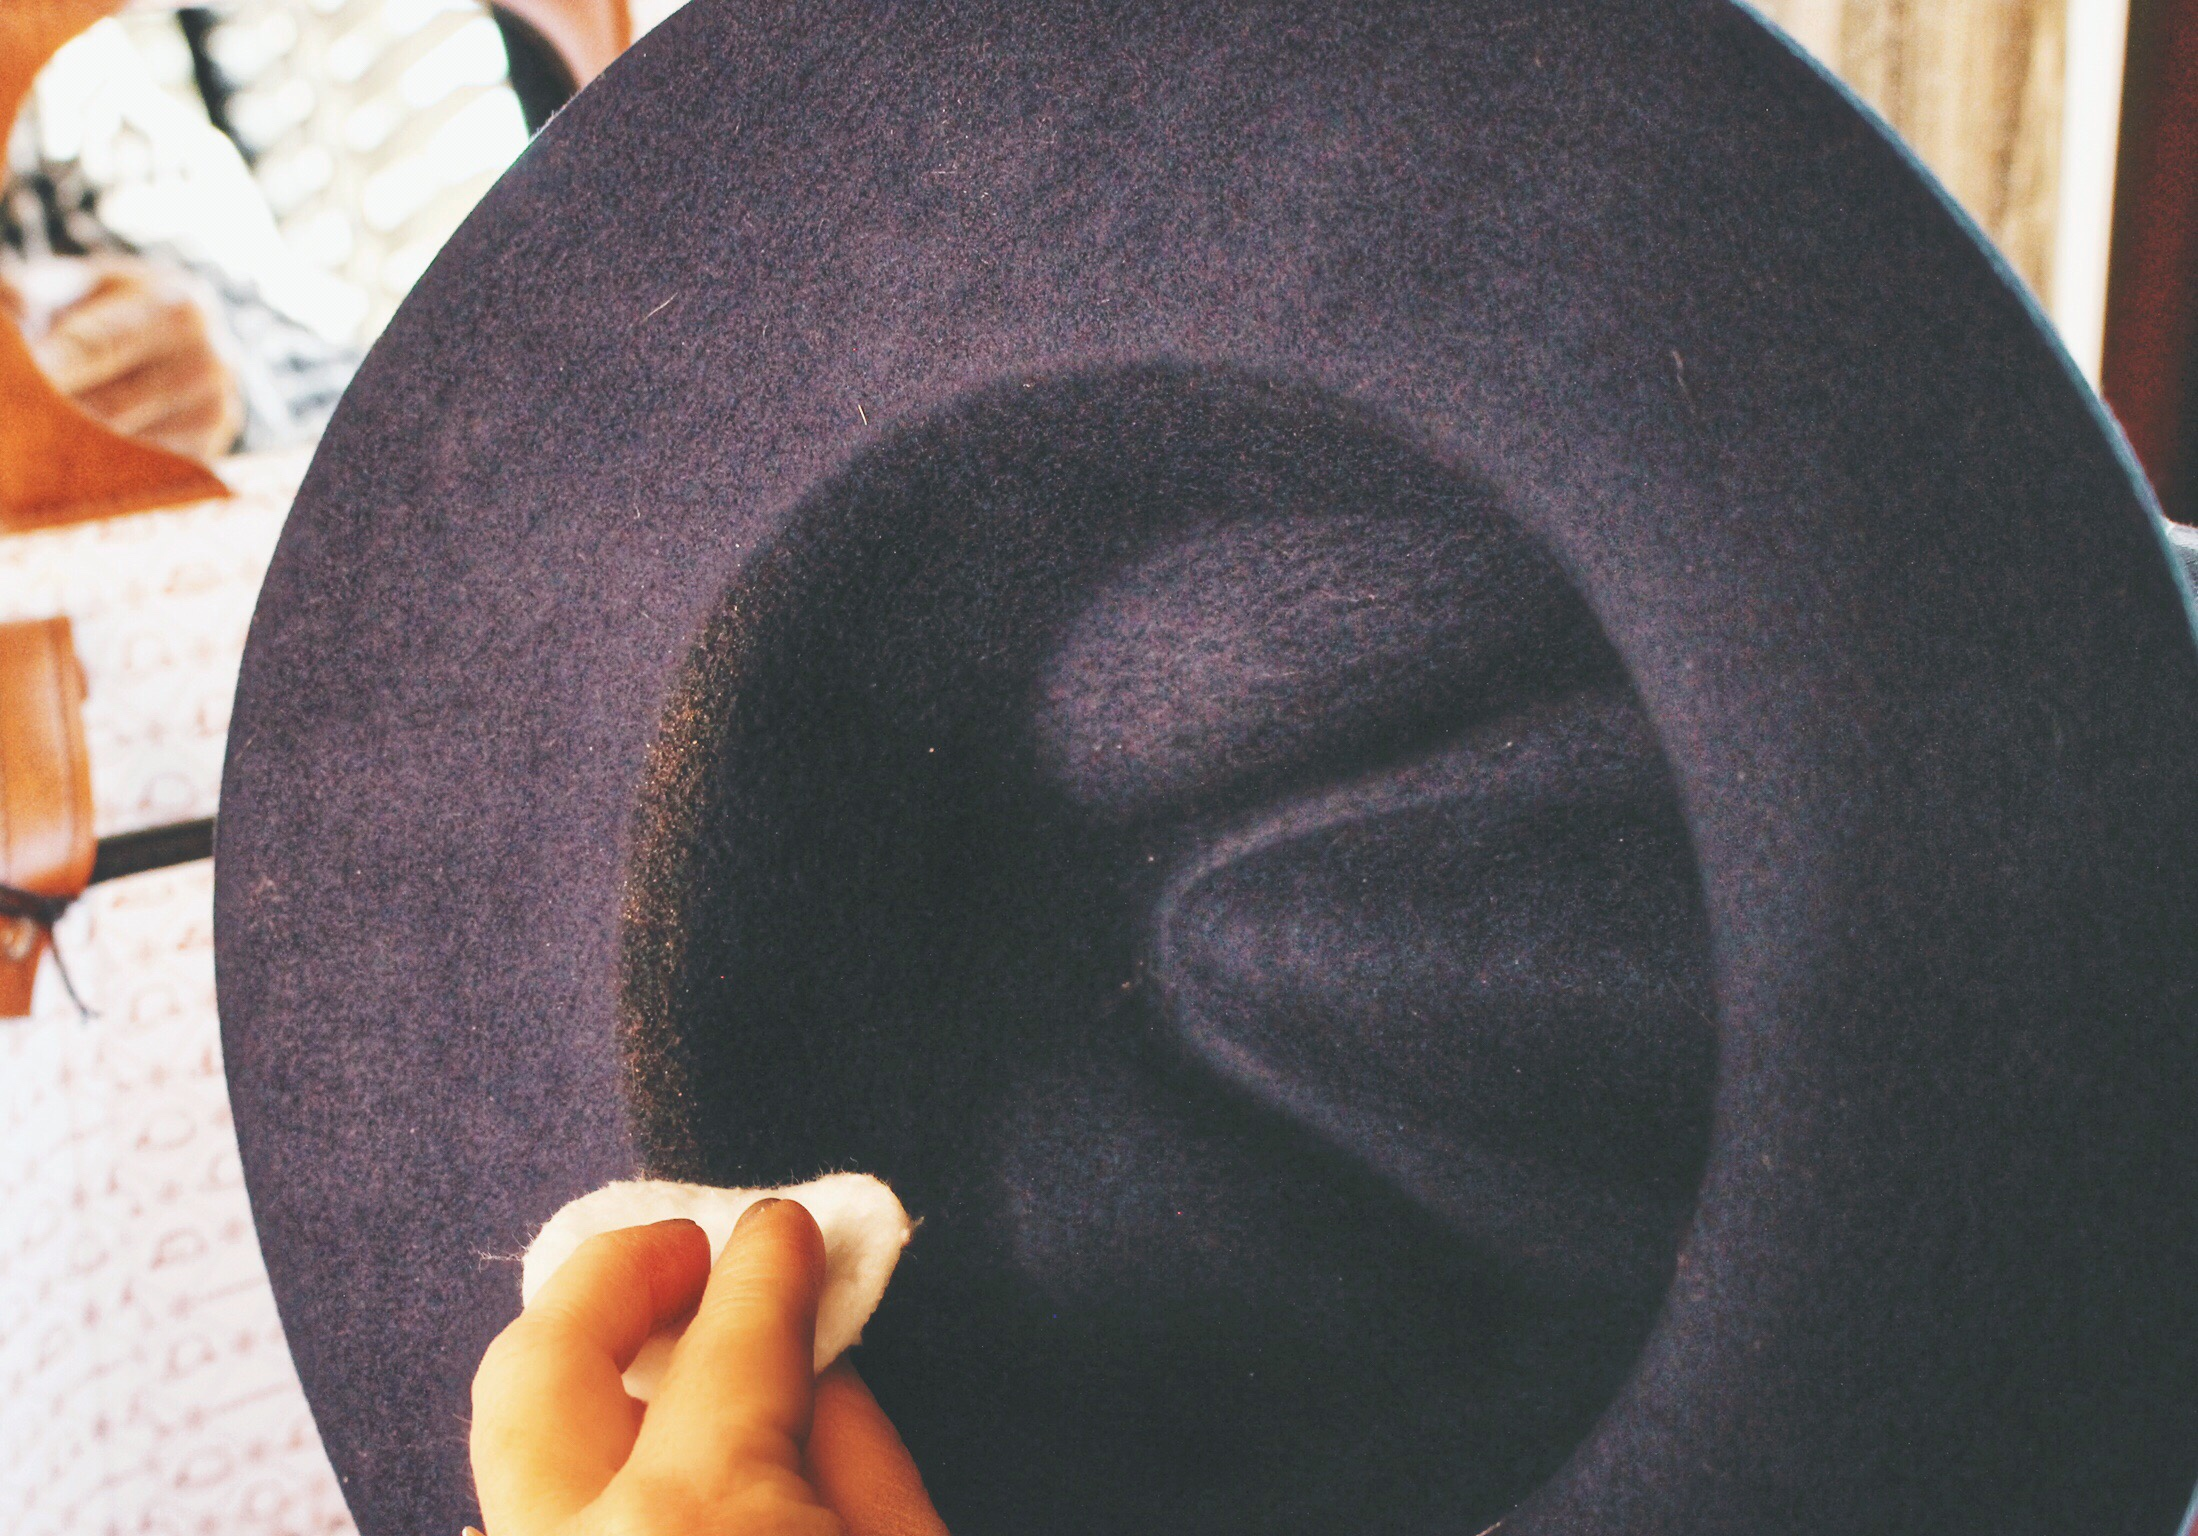 How to remove makeup from a felt hat